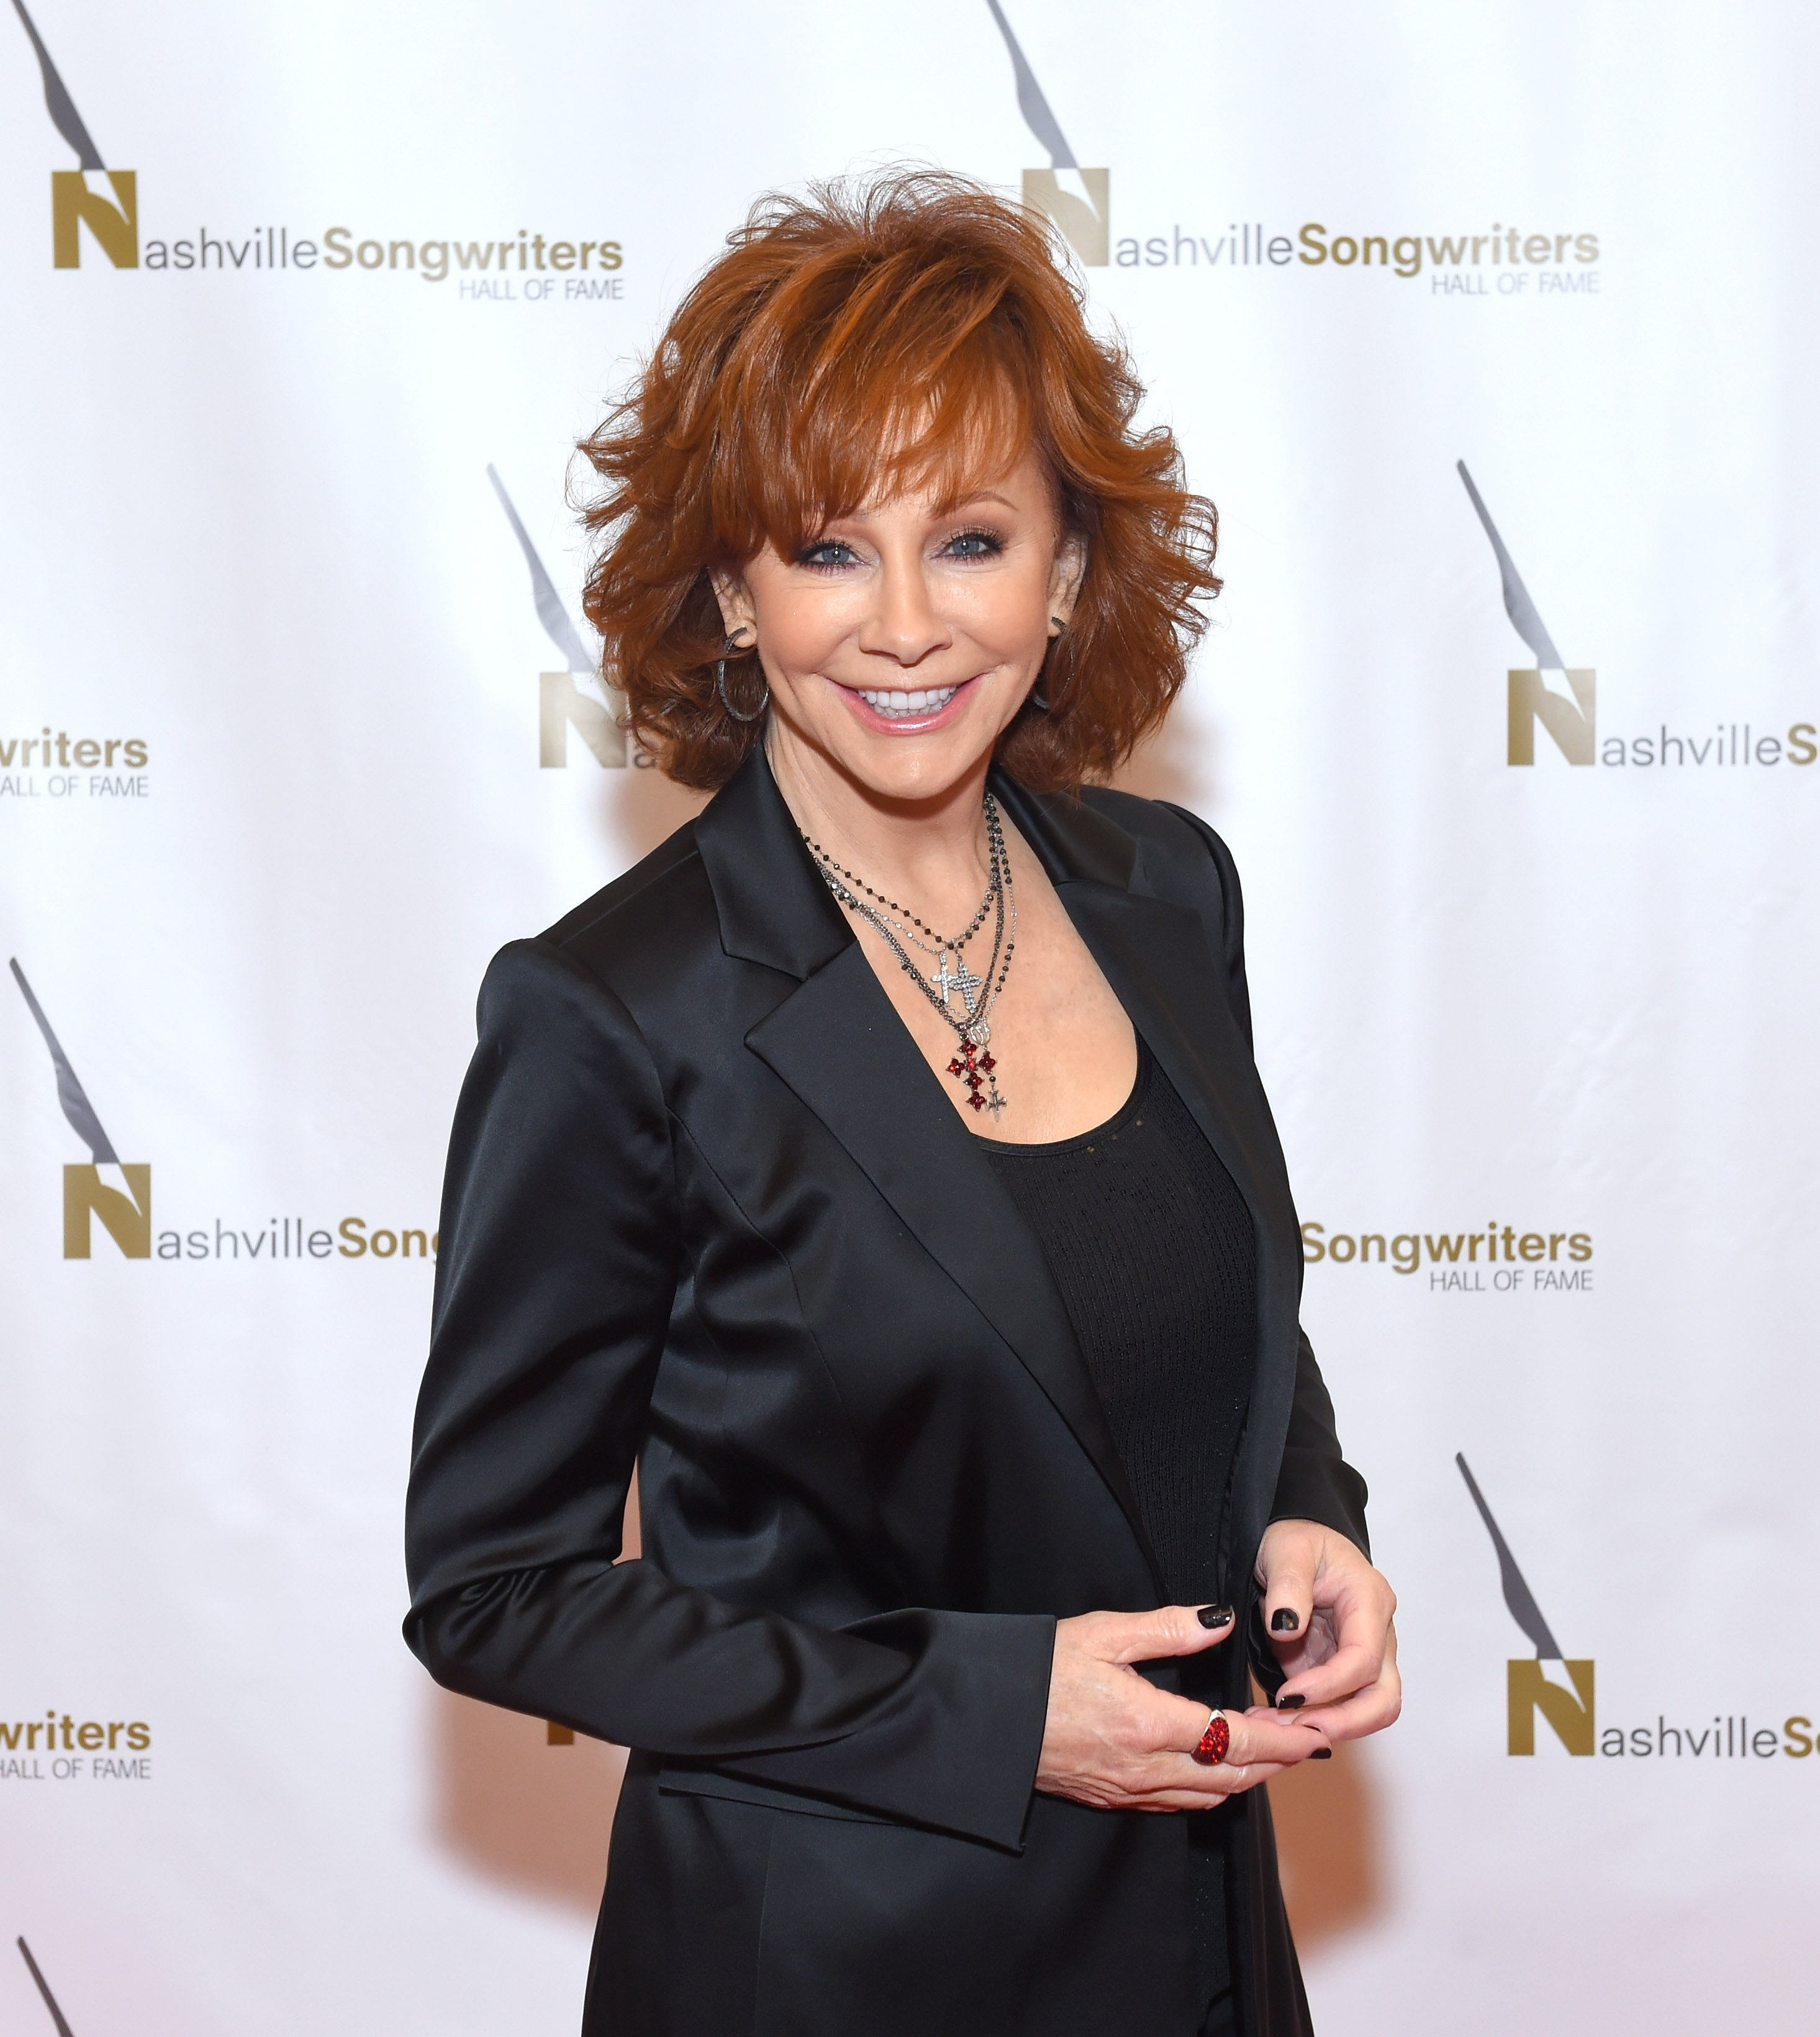 Reba McEntire looking stylish in a black suit at the Nashville Songwriters Hall of Fame Gala, October, 2018. | Photo: Getty Images.